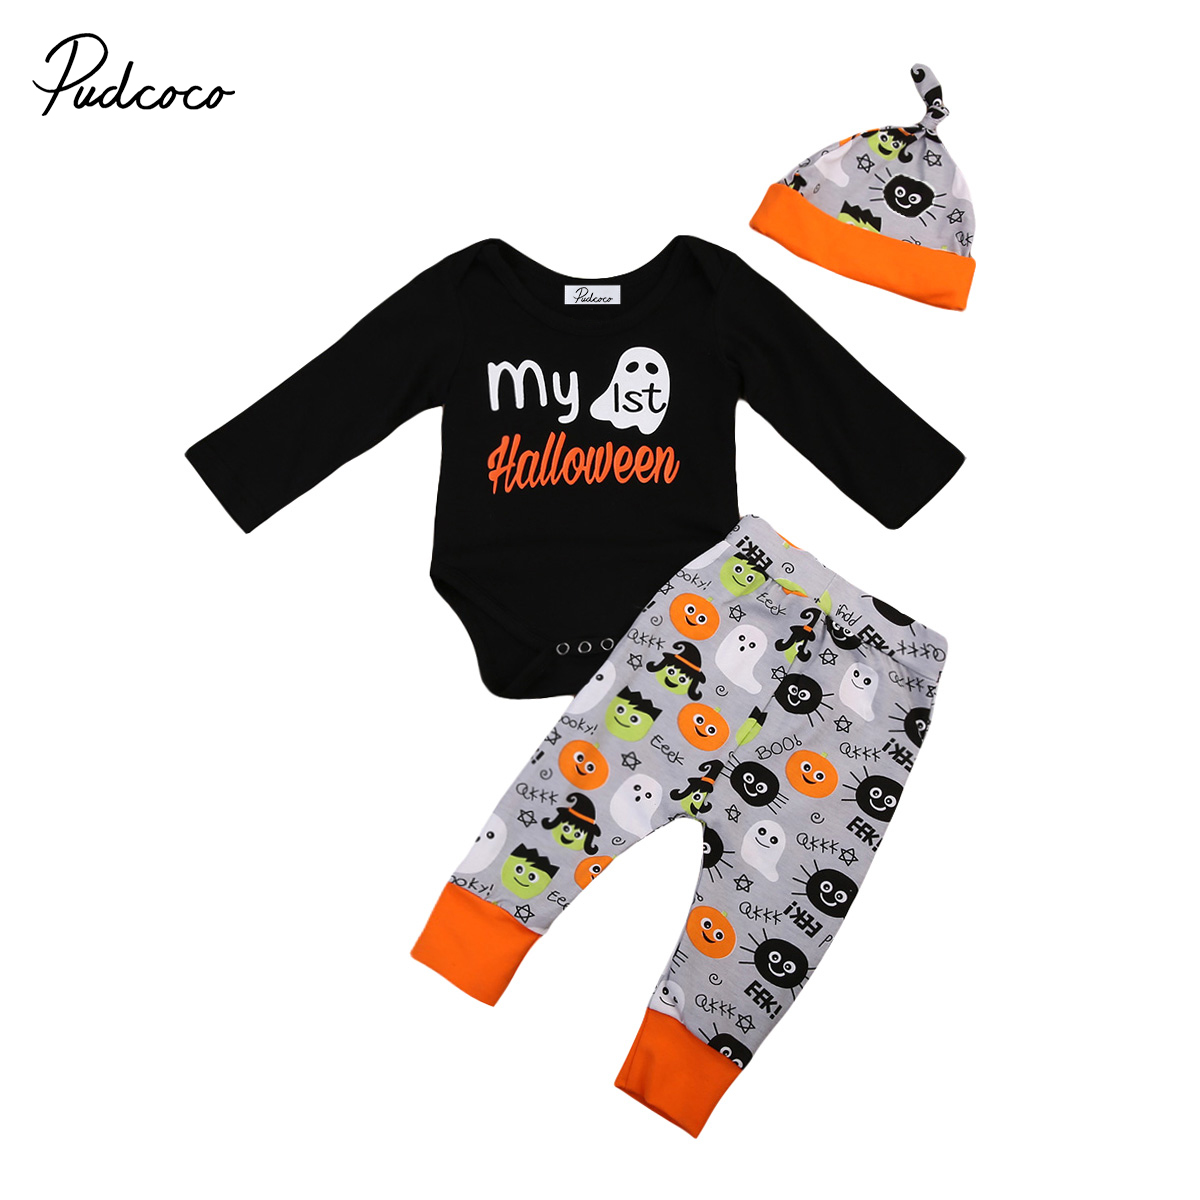 3pcs 2017 baby first halloween baby girl Boys clothes set autumn Newborn Baby Boy Girl romper+Pants+hat Outfits Sets baby gift купить недорого в Москве